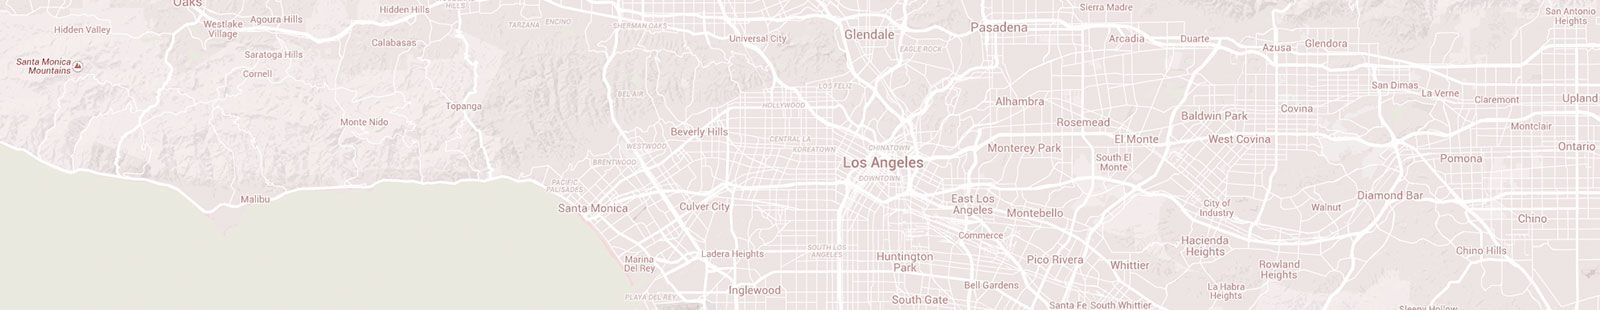 Apartments For Rent In Los Angeles CA - Map of average rents across the us in major cities